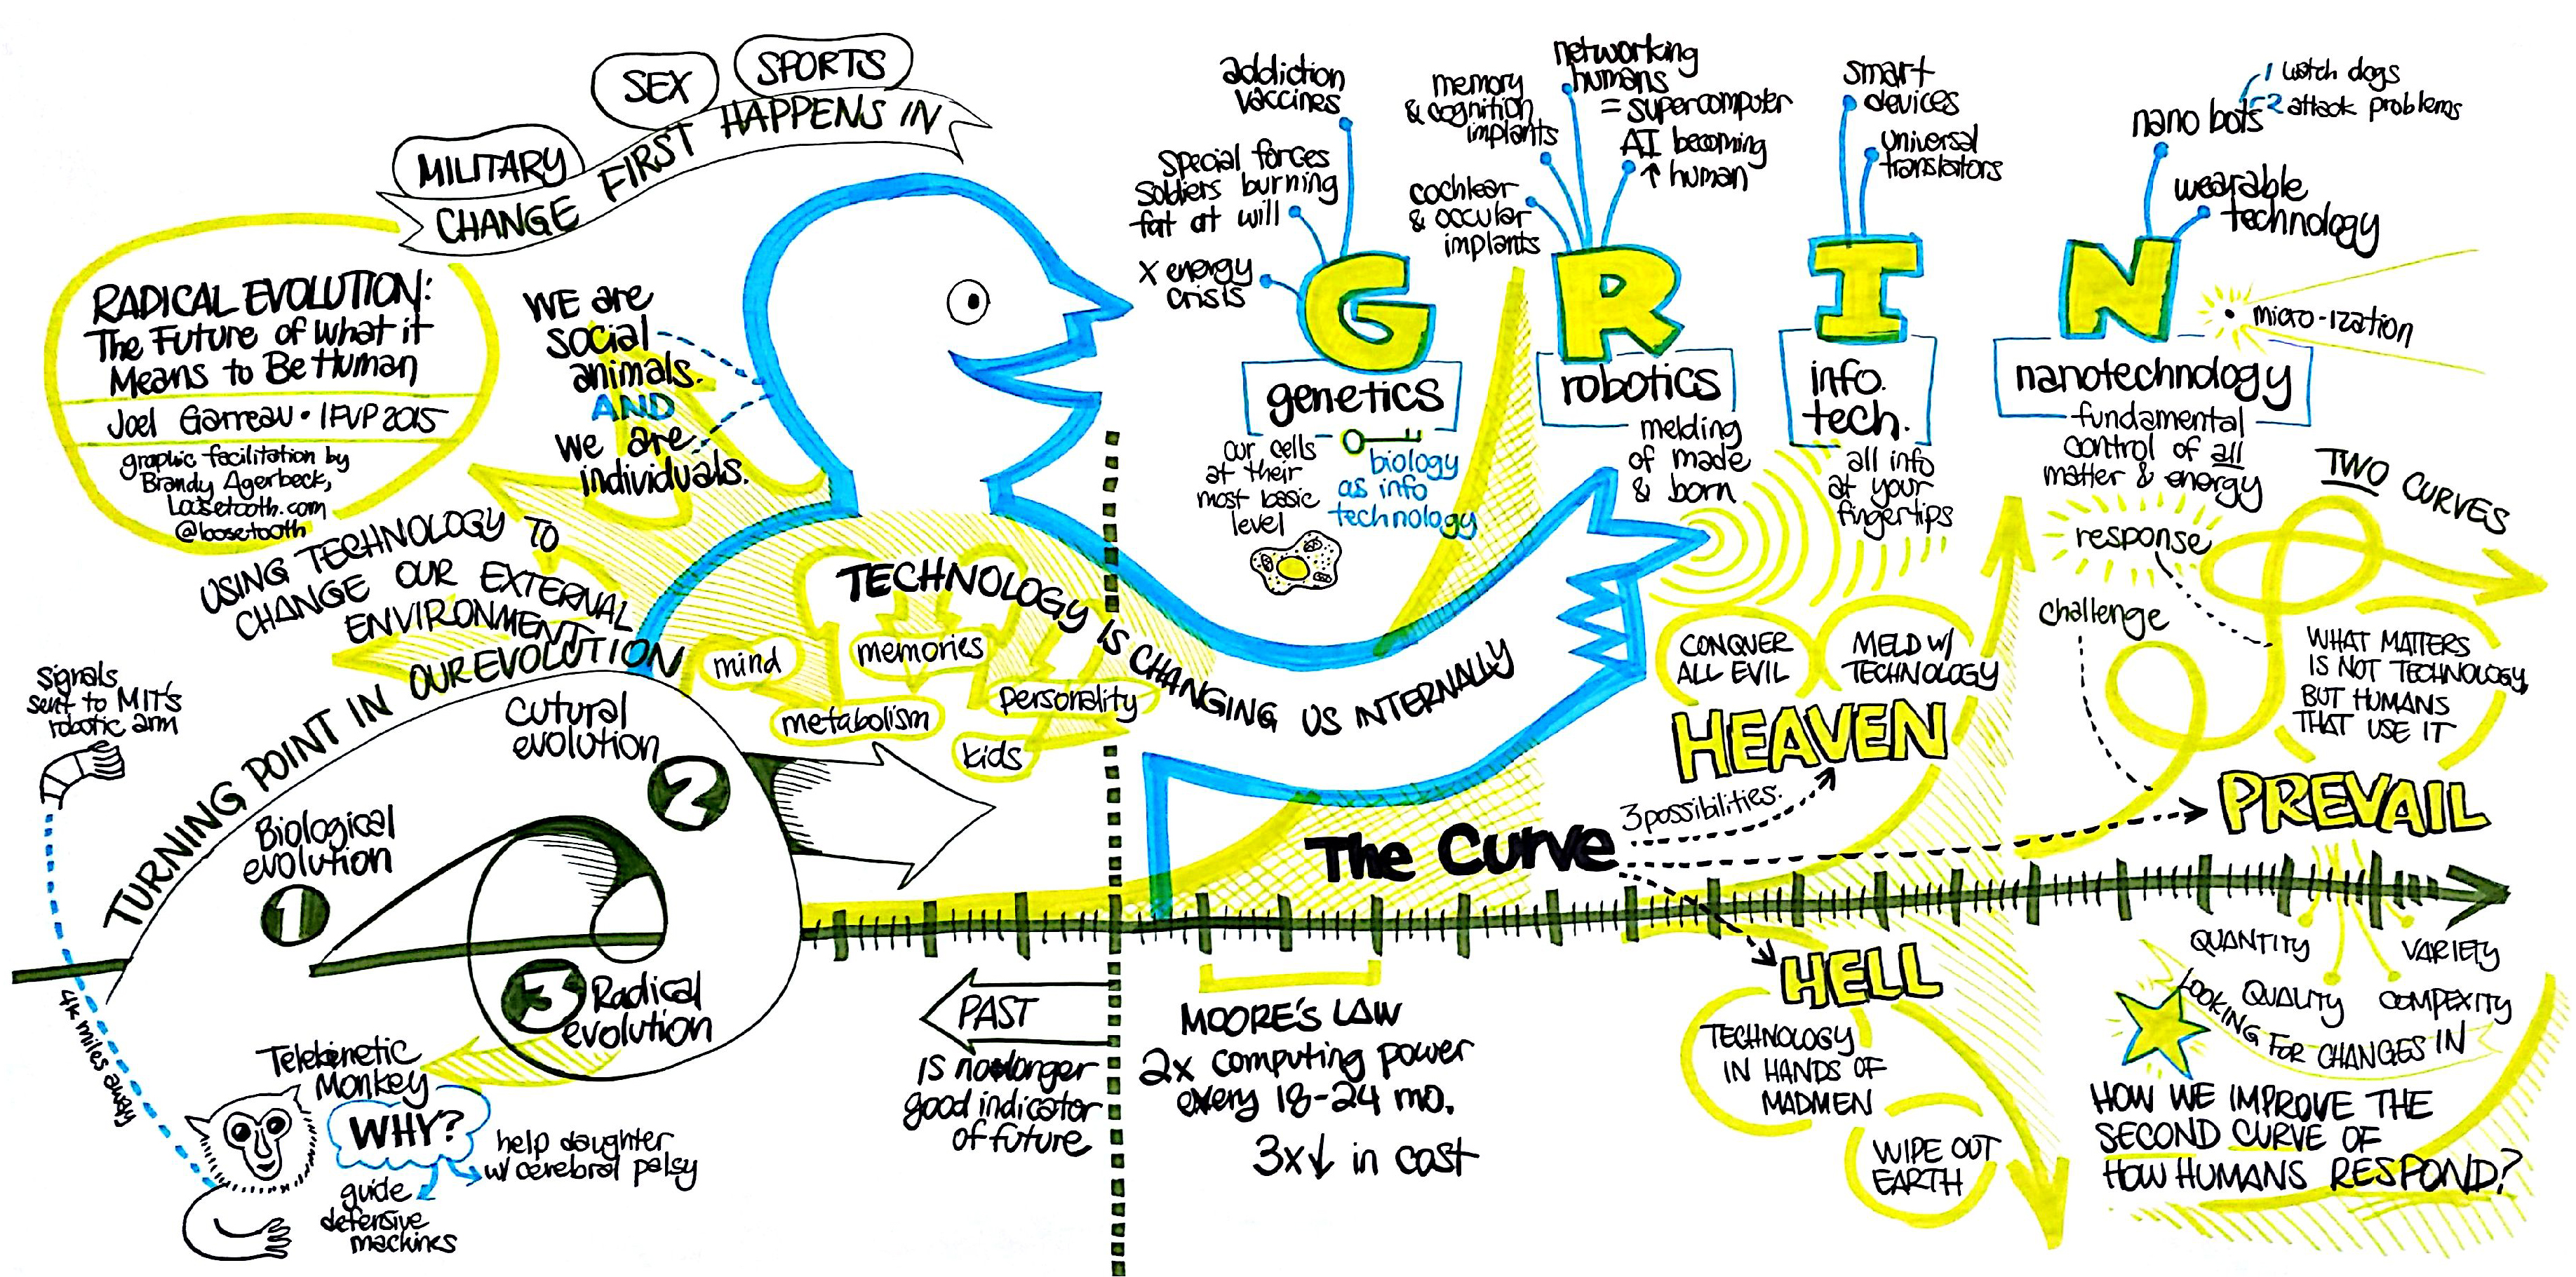 Finished chart of Joel Garreau's opening keynote at IFVP 2015 in Austin